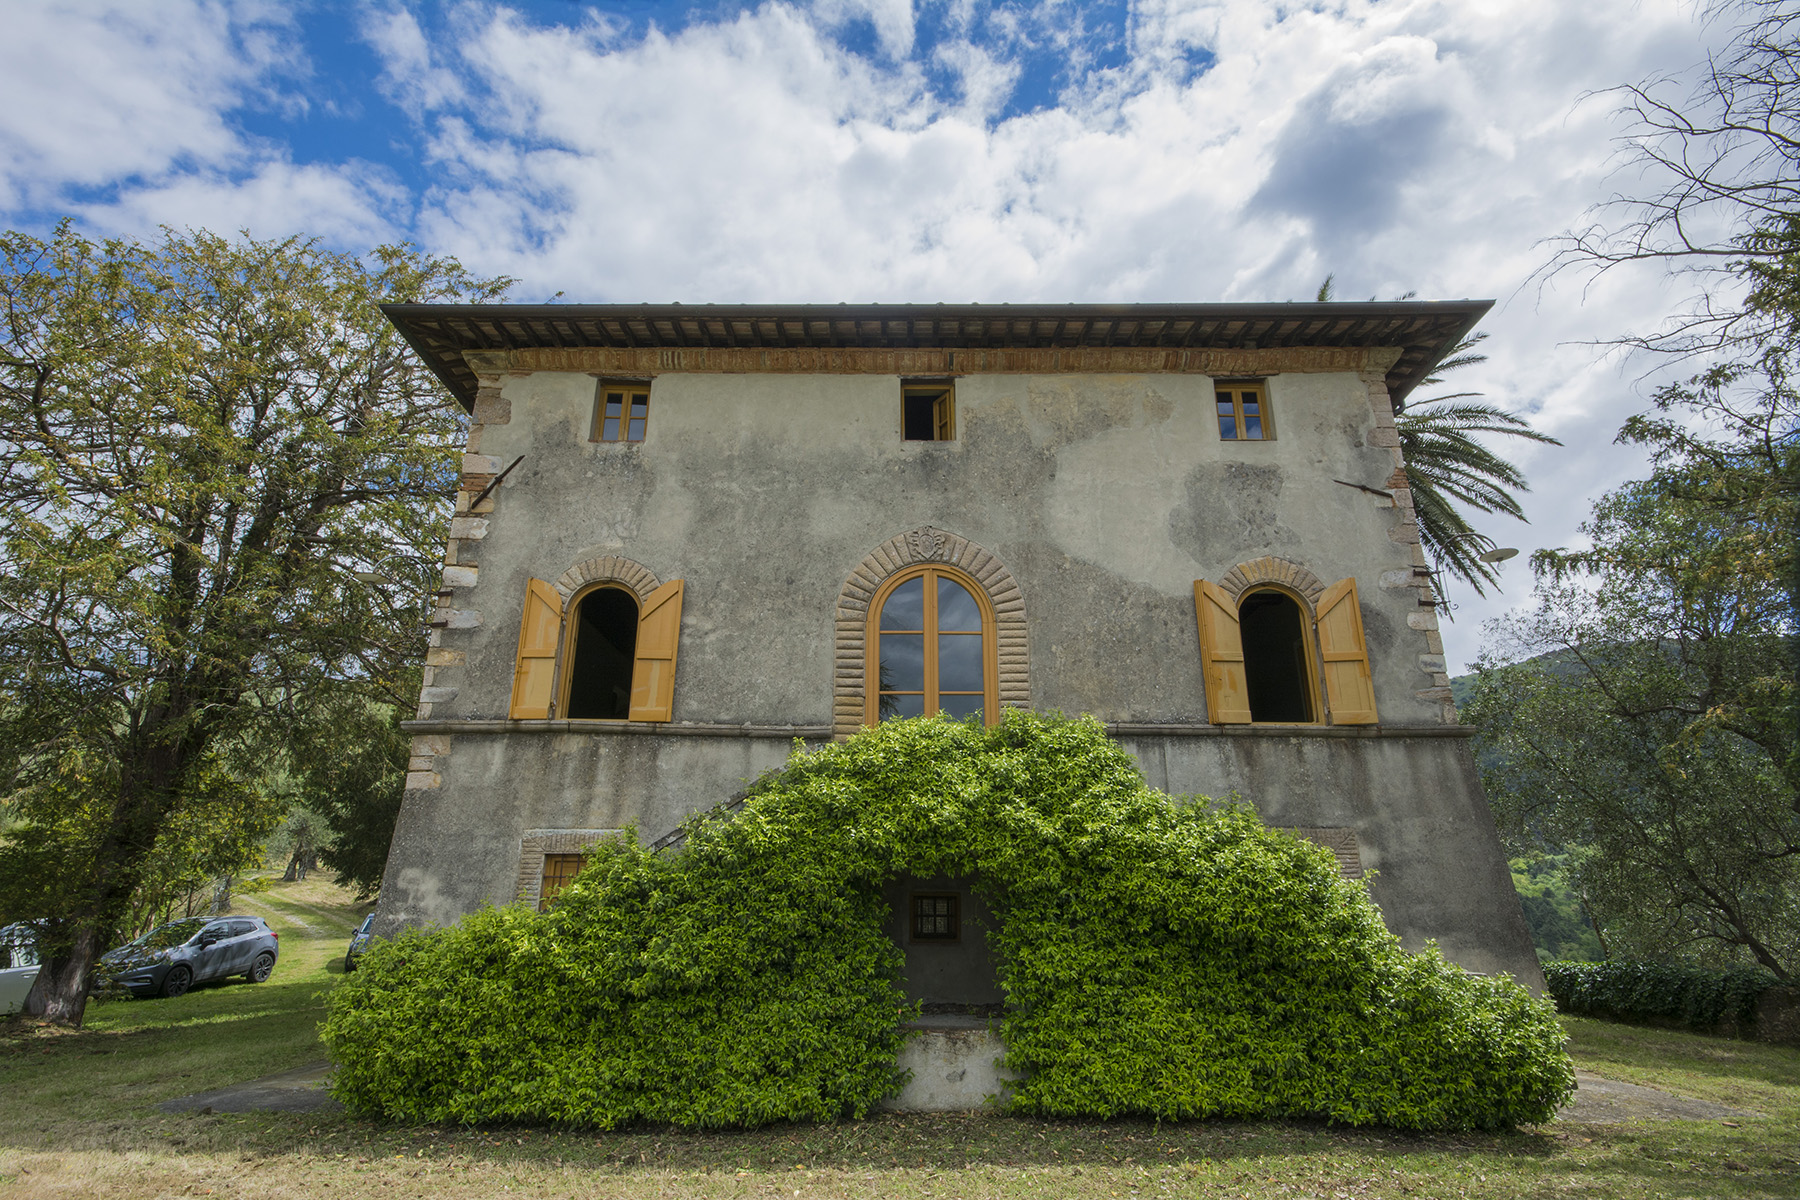 Single Family Home for Sale at Stunning villa with breathtaking views of the Lucca countryside Other Lucca, Lucca Italy